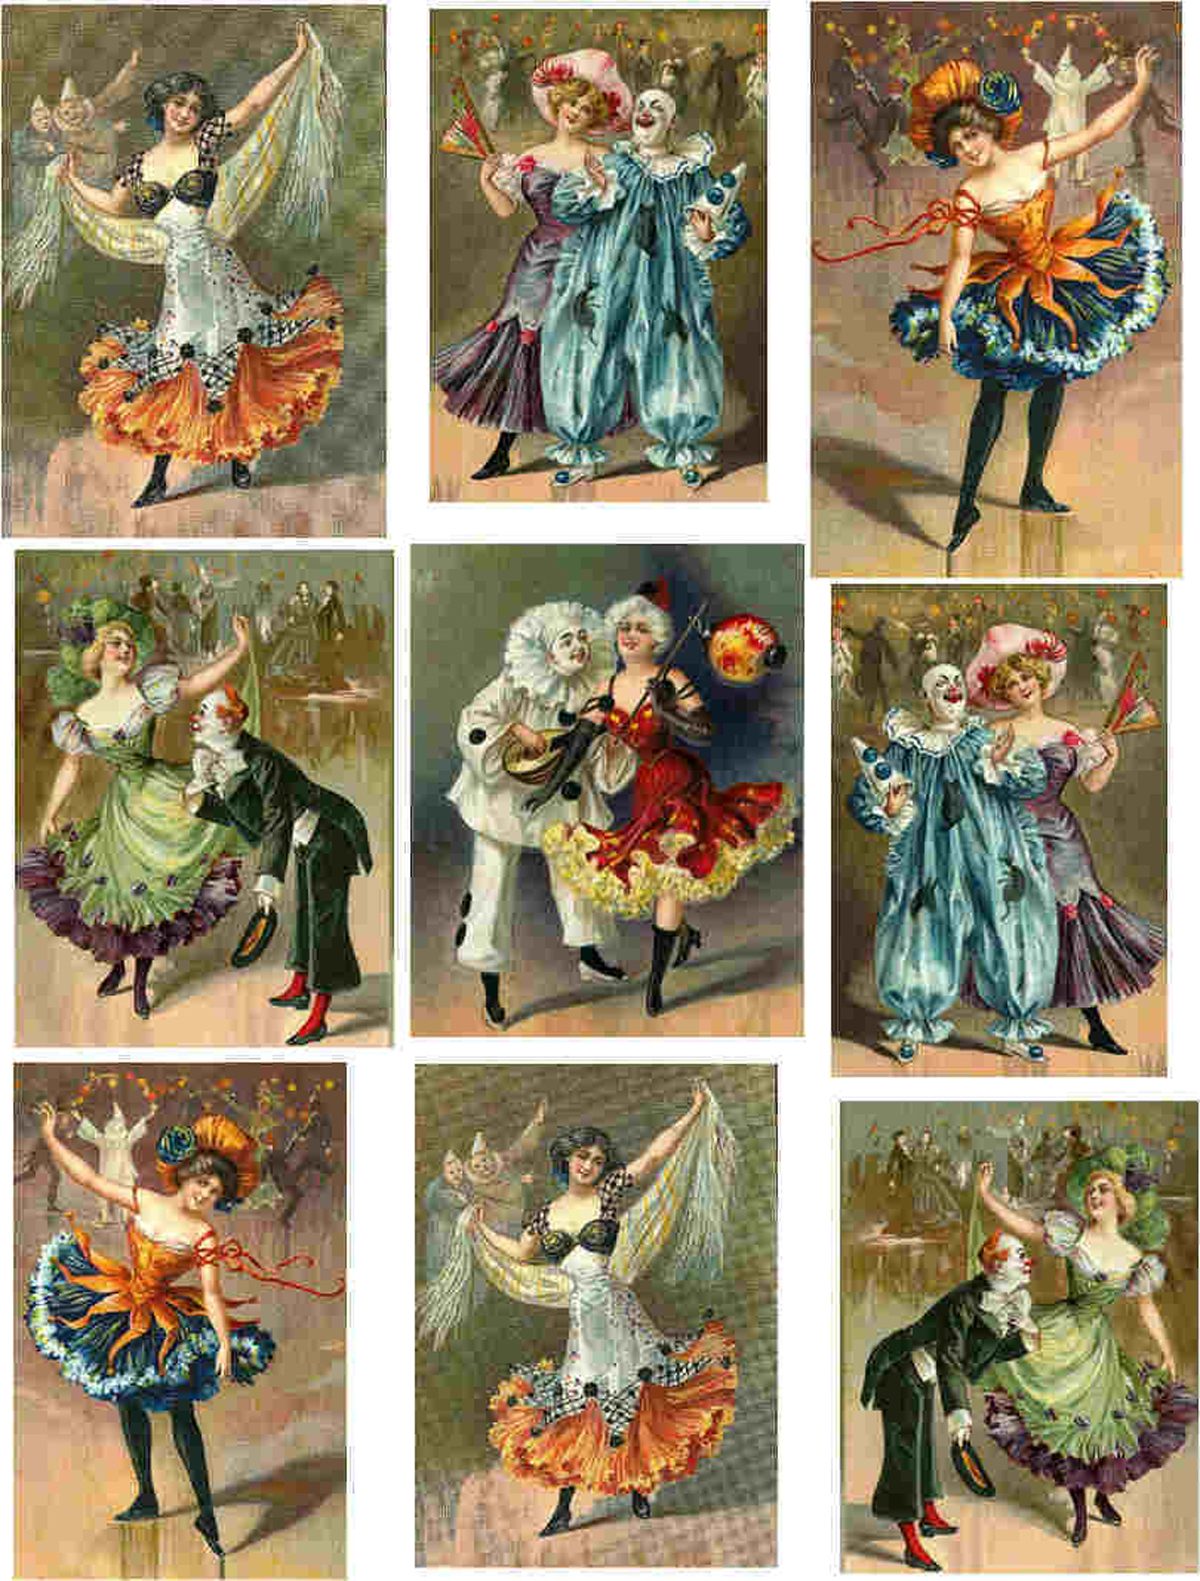 clipart - circus & movies & misc.... on Pinterest   Circus ...